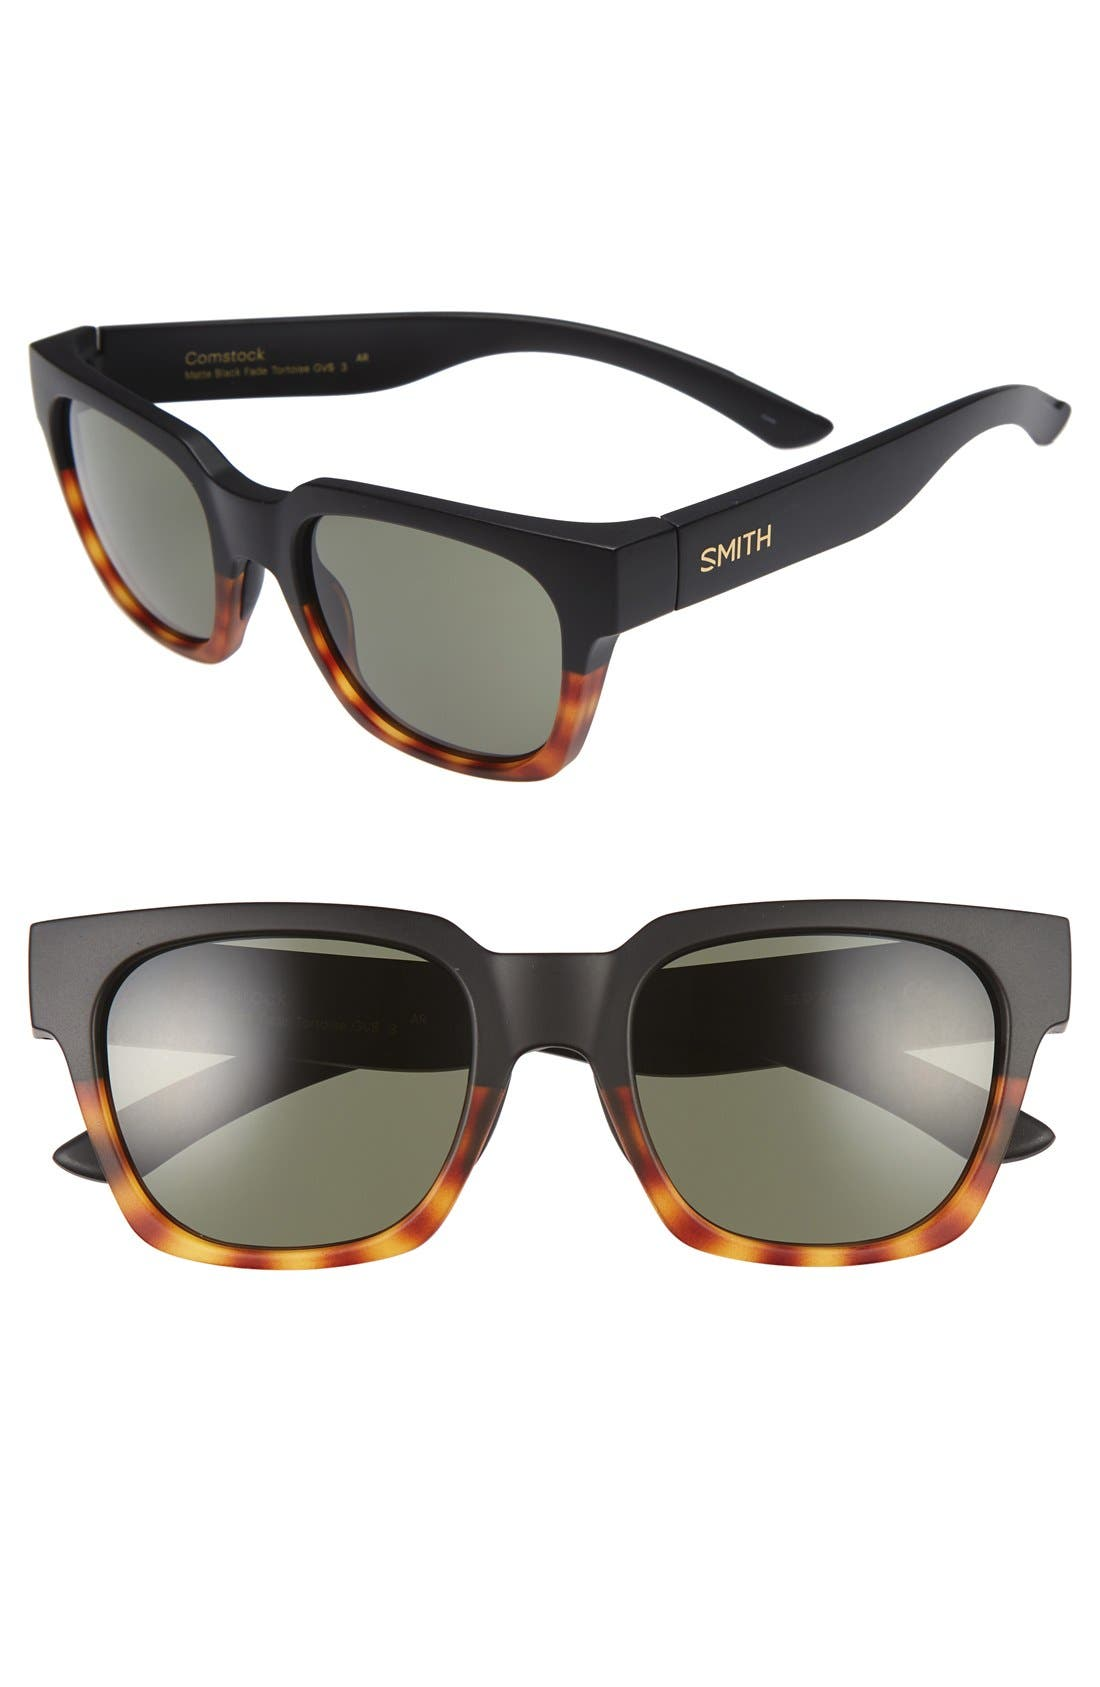 Smith 'Comstock' 51mm Polarized Sunglasses